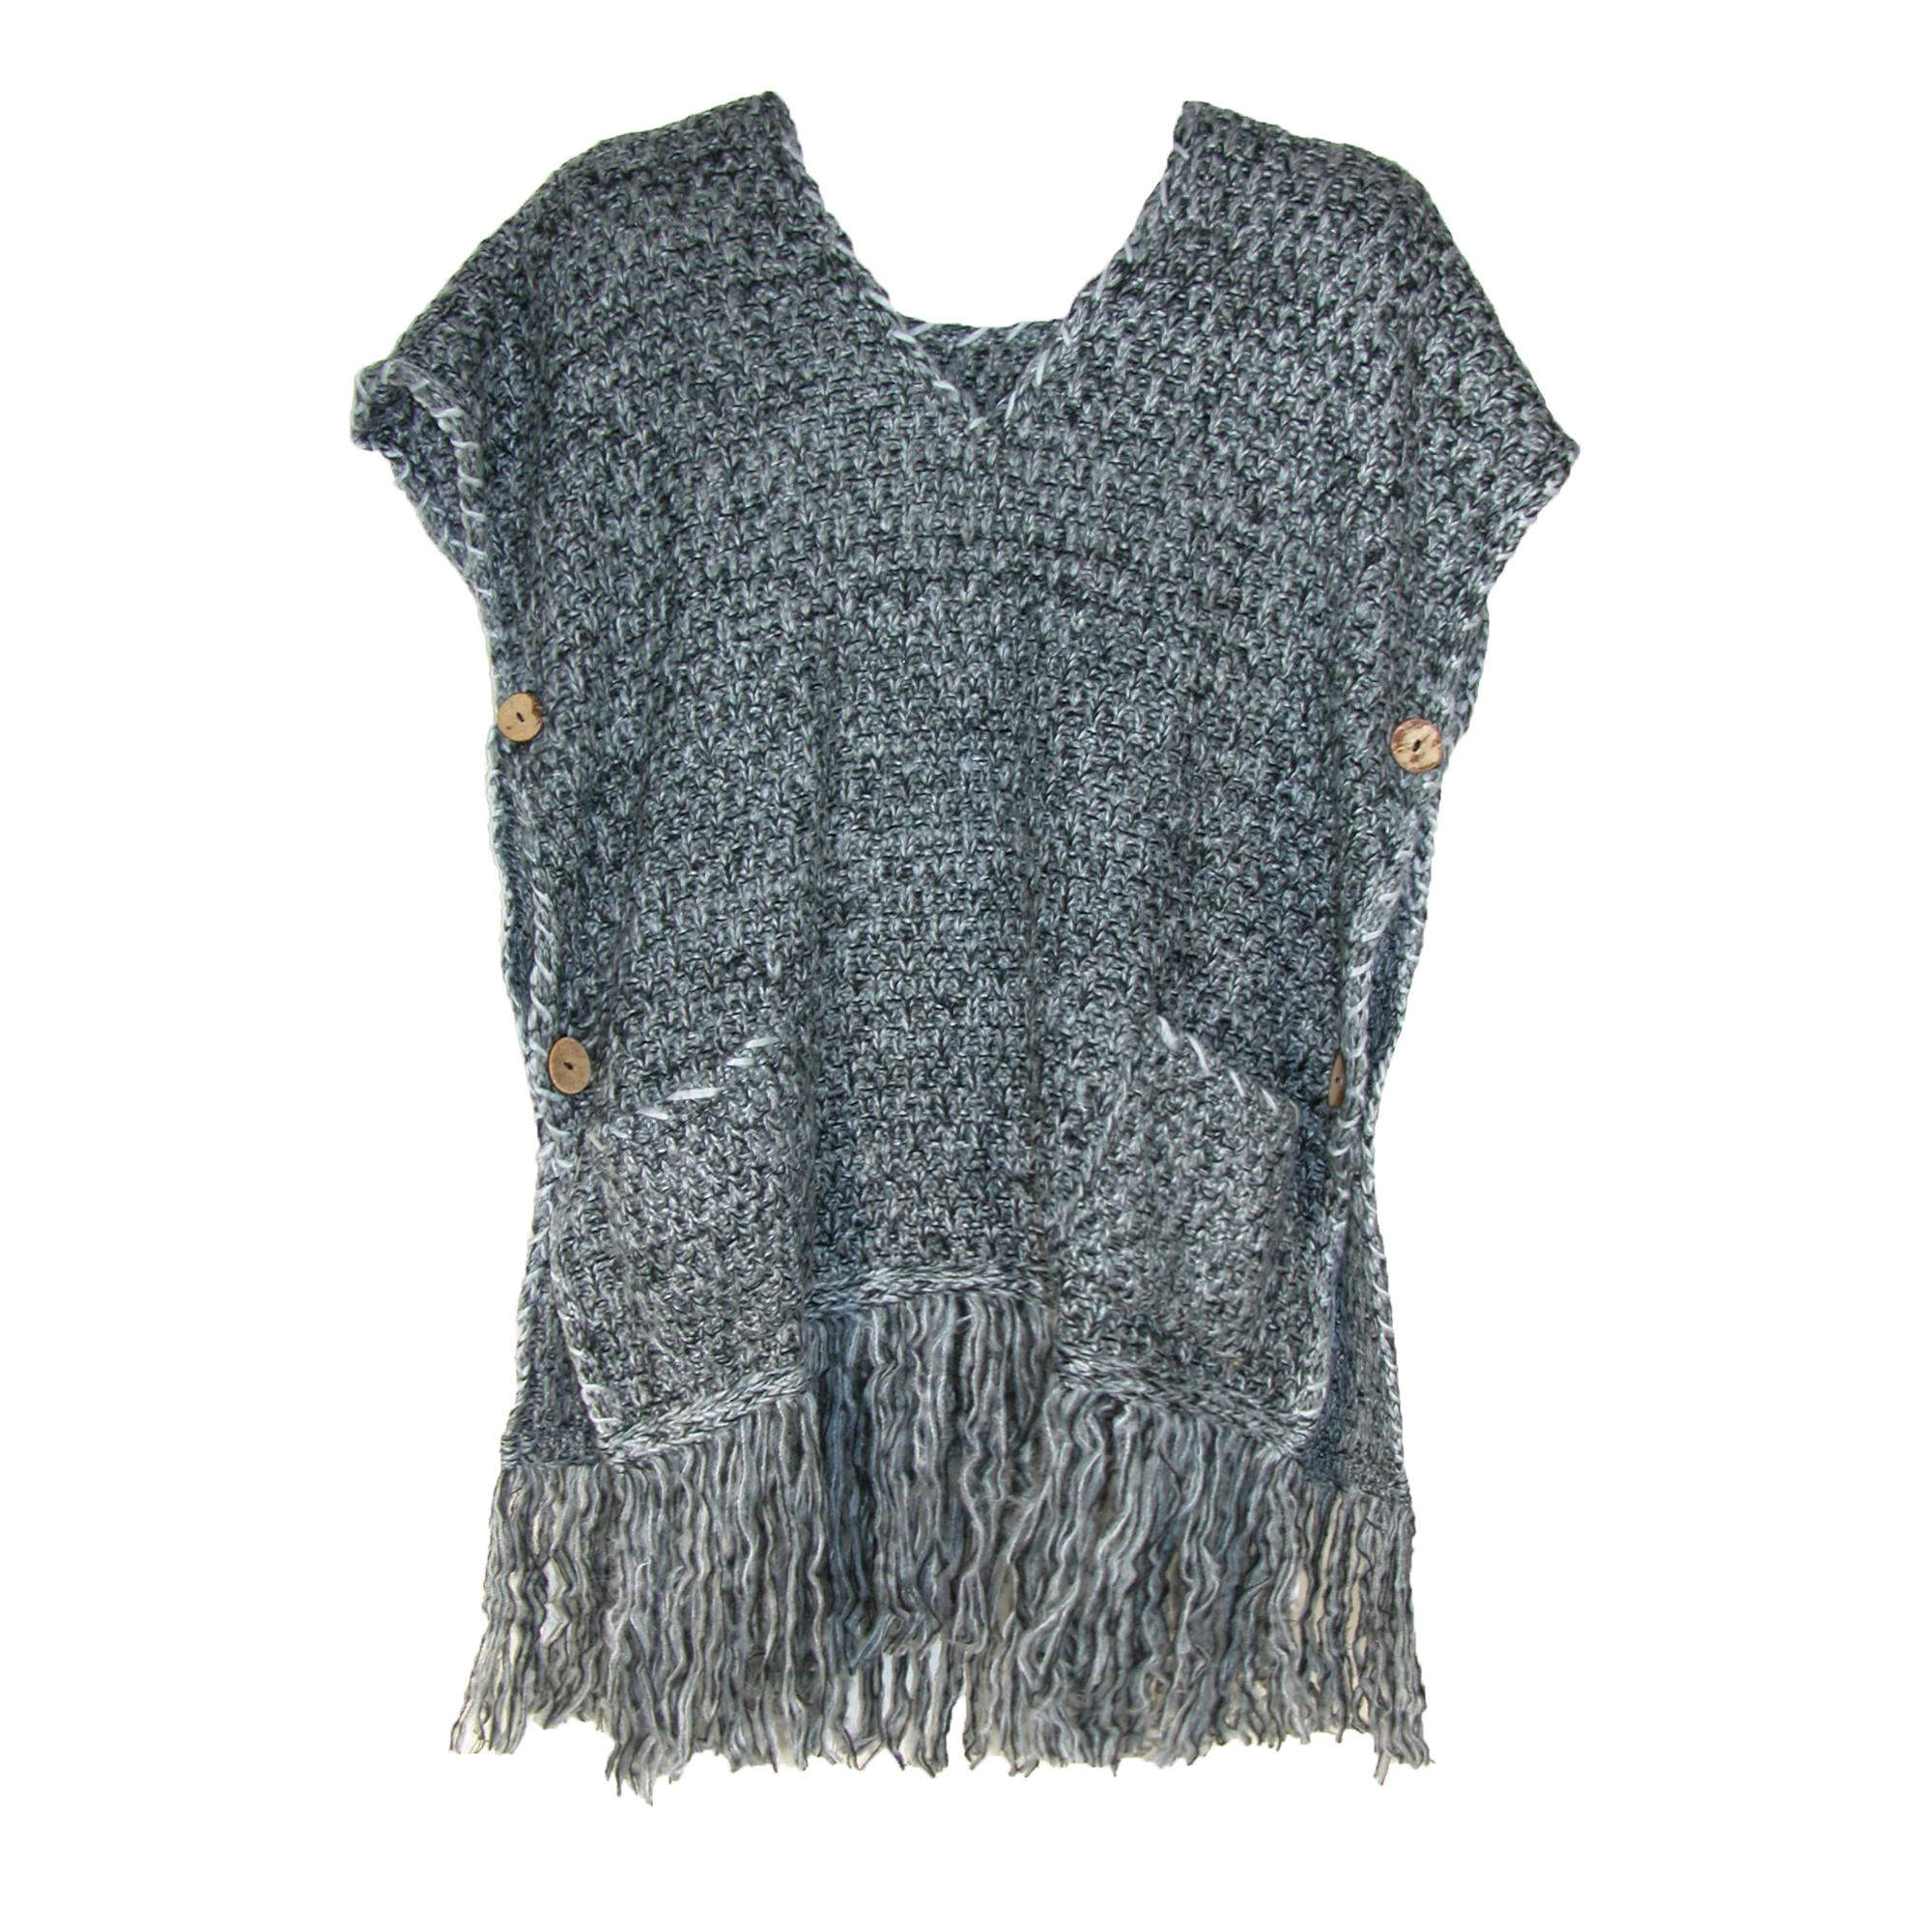 Ctm Womens Knitted Tunic Poncho With Fringe And Pockets